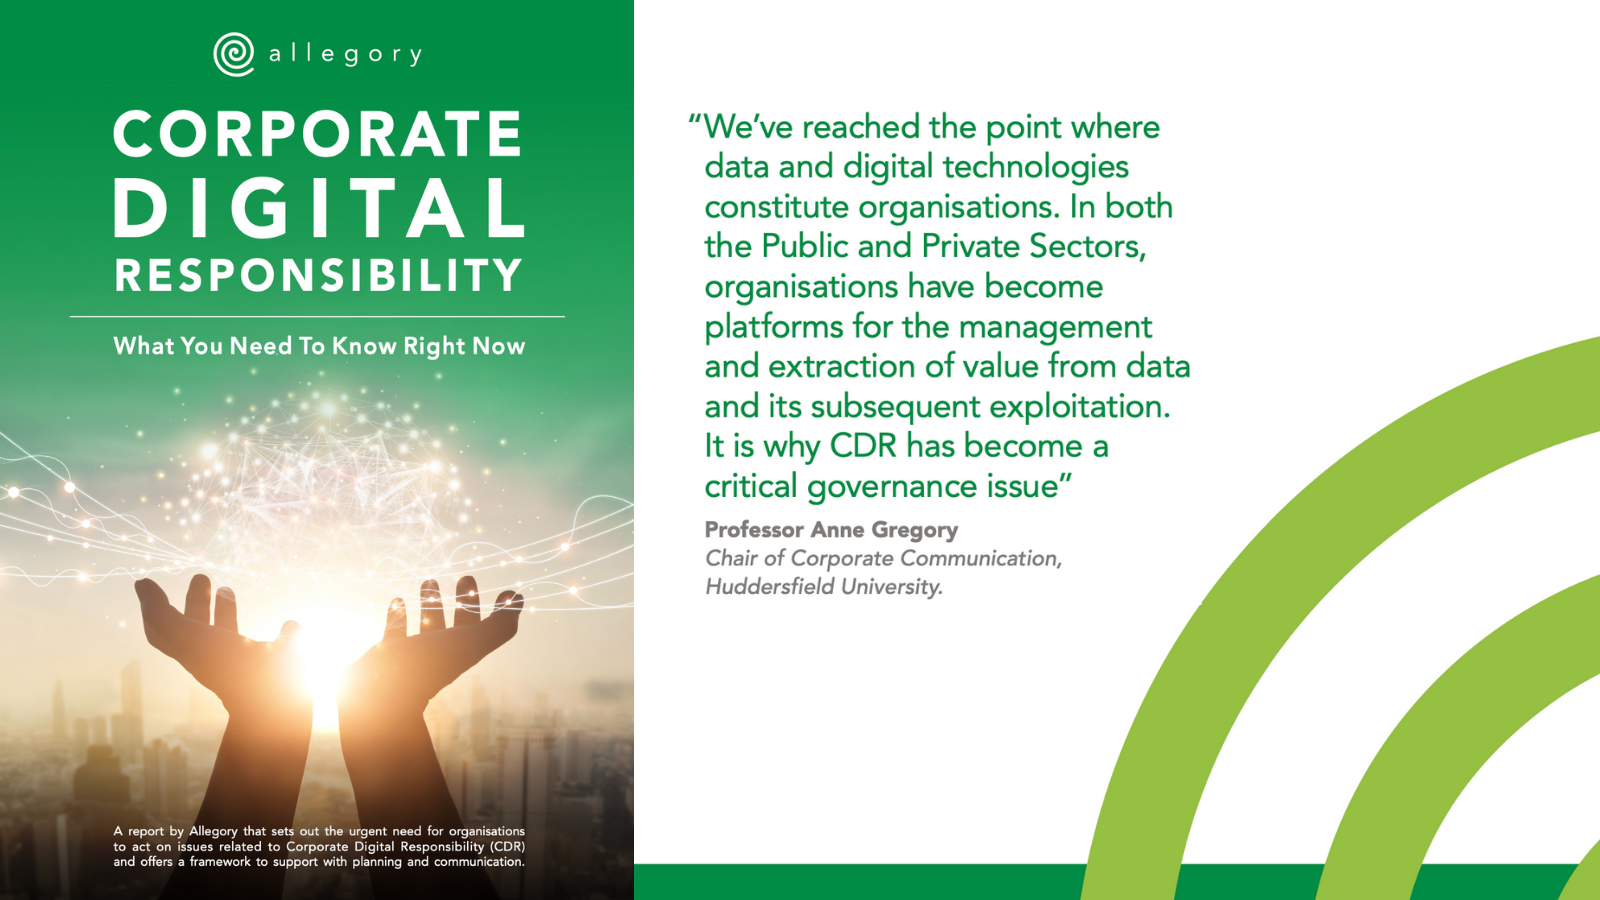 Corporate Digital Responsibility Report from Allegory